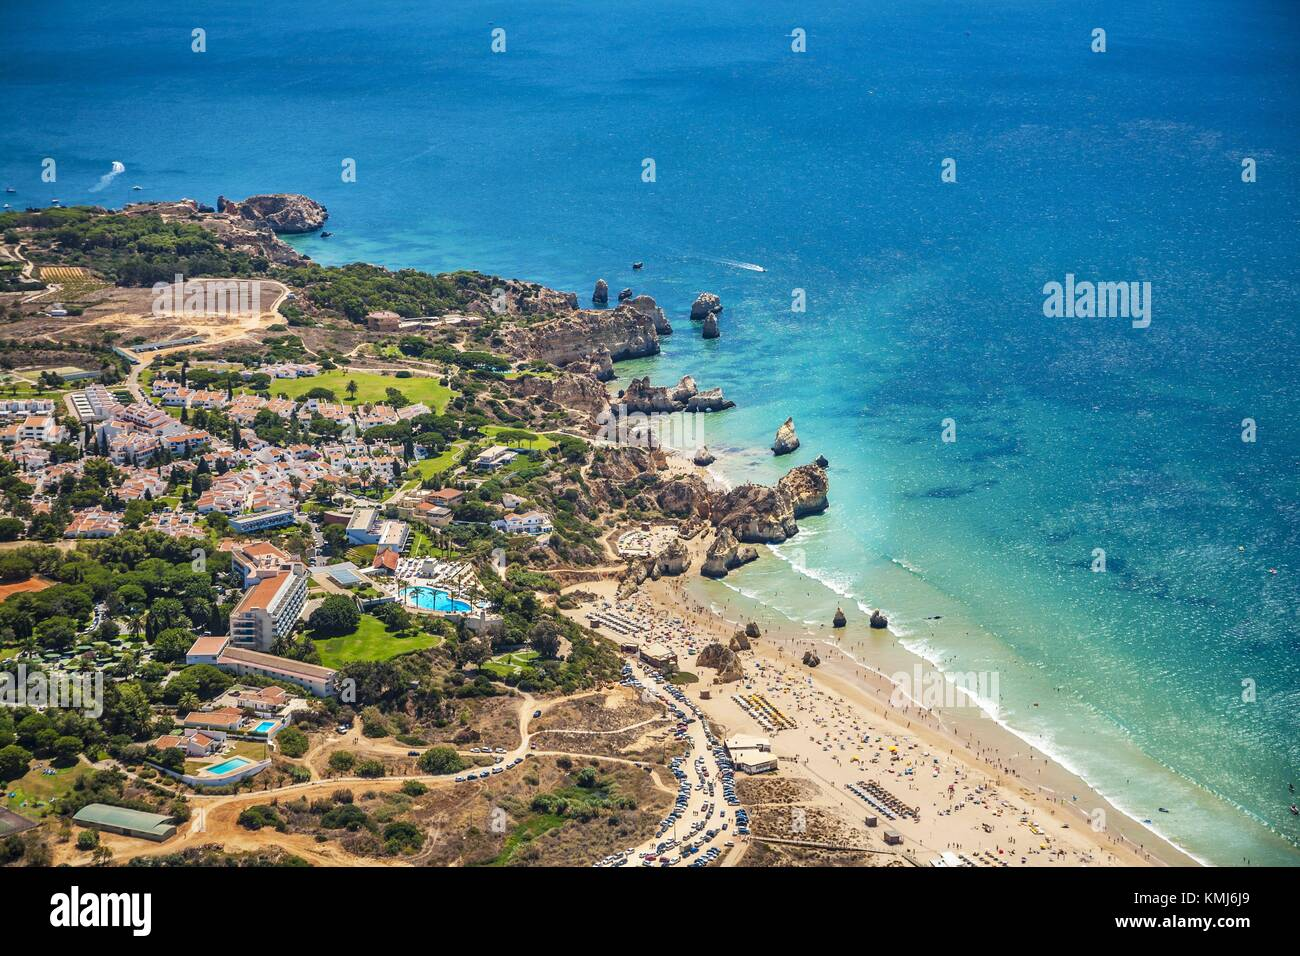 In the foreground Alvor beach. In the background Joao Arans Ponta, Tres Irmaos and Prainha beach. Faro district. - Stock Image